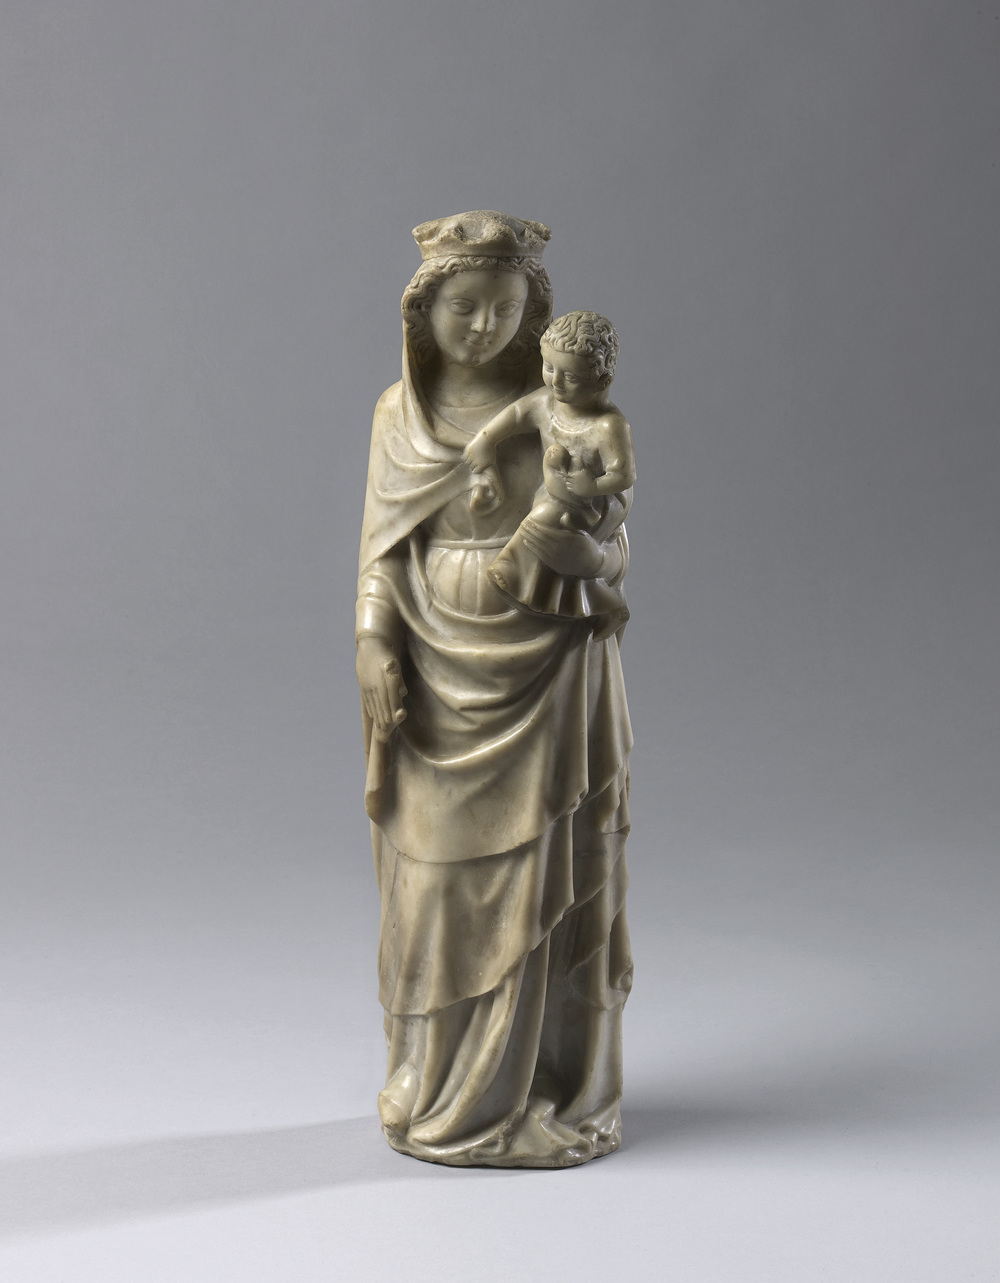 Standing Virgin and Child France, Paris environs c. 1330-1340 Height 45.5 cm, alabaster